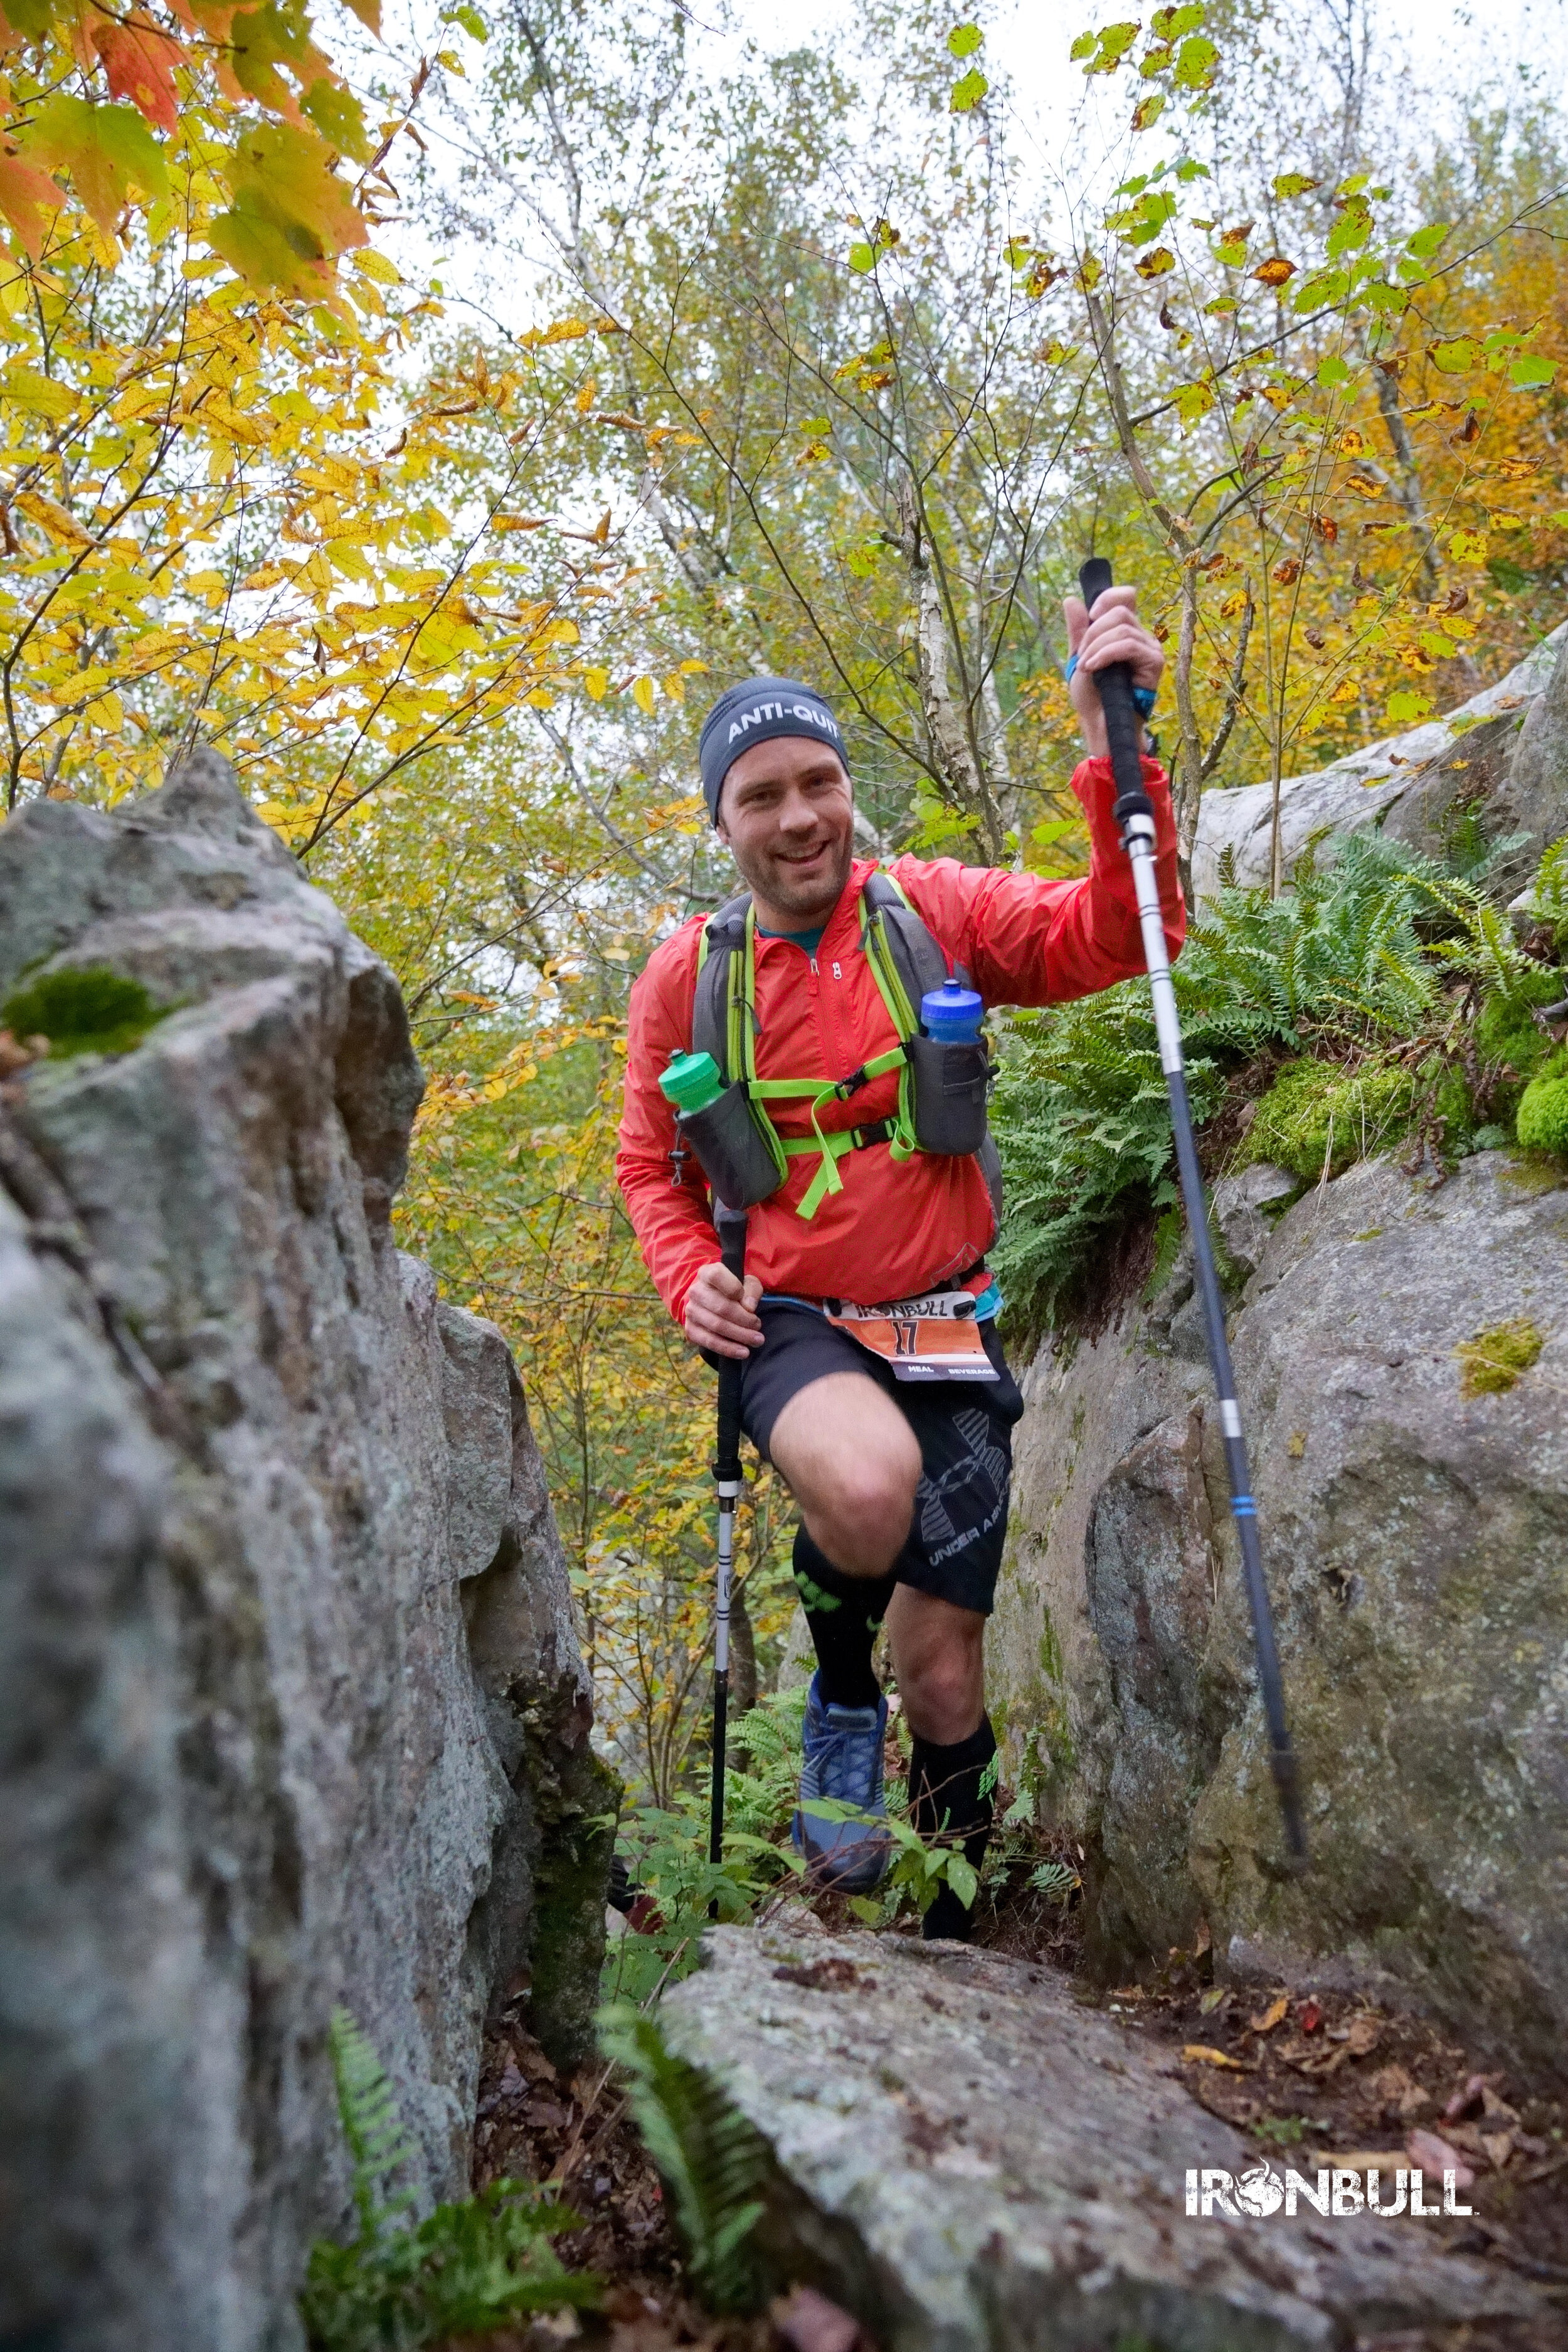 Rob Hoehn uses trekking poles to navigate the challenging terrain at Rib Mountain State Park.  Photo credit: Gregory T Photography LLC